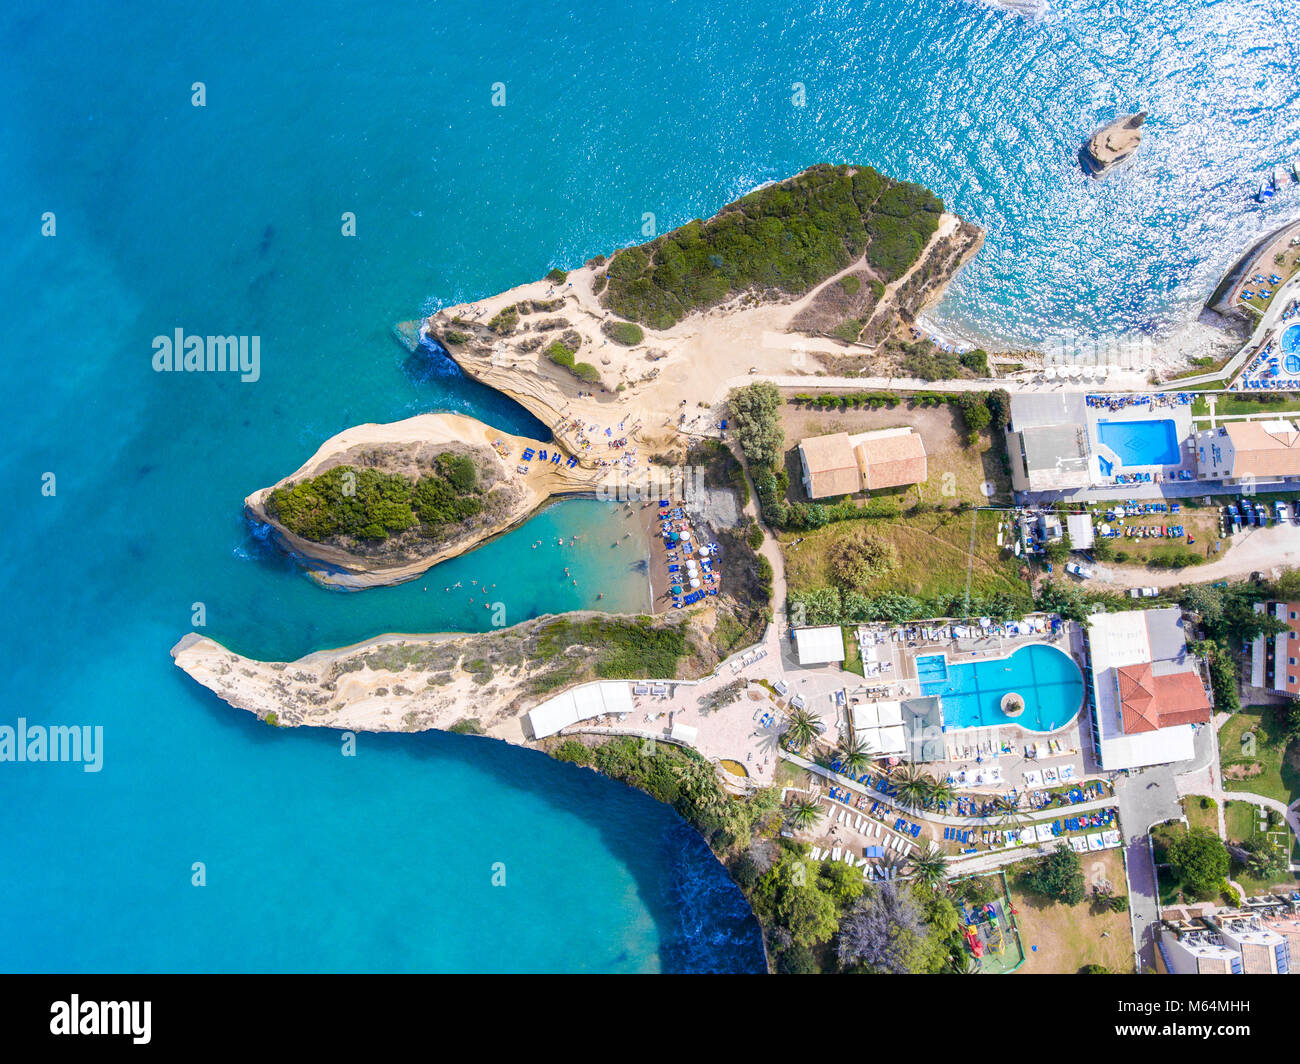 Canal D'Amour beach in Sidari, Corfu island, Greece. People bathing in the sun. Turqoise water. Stock Photo